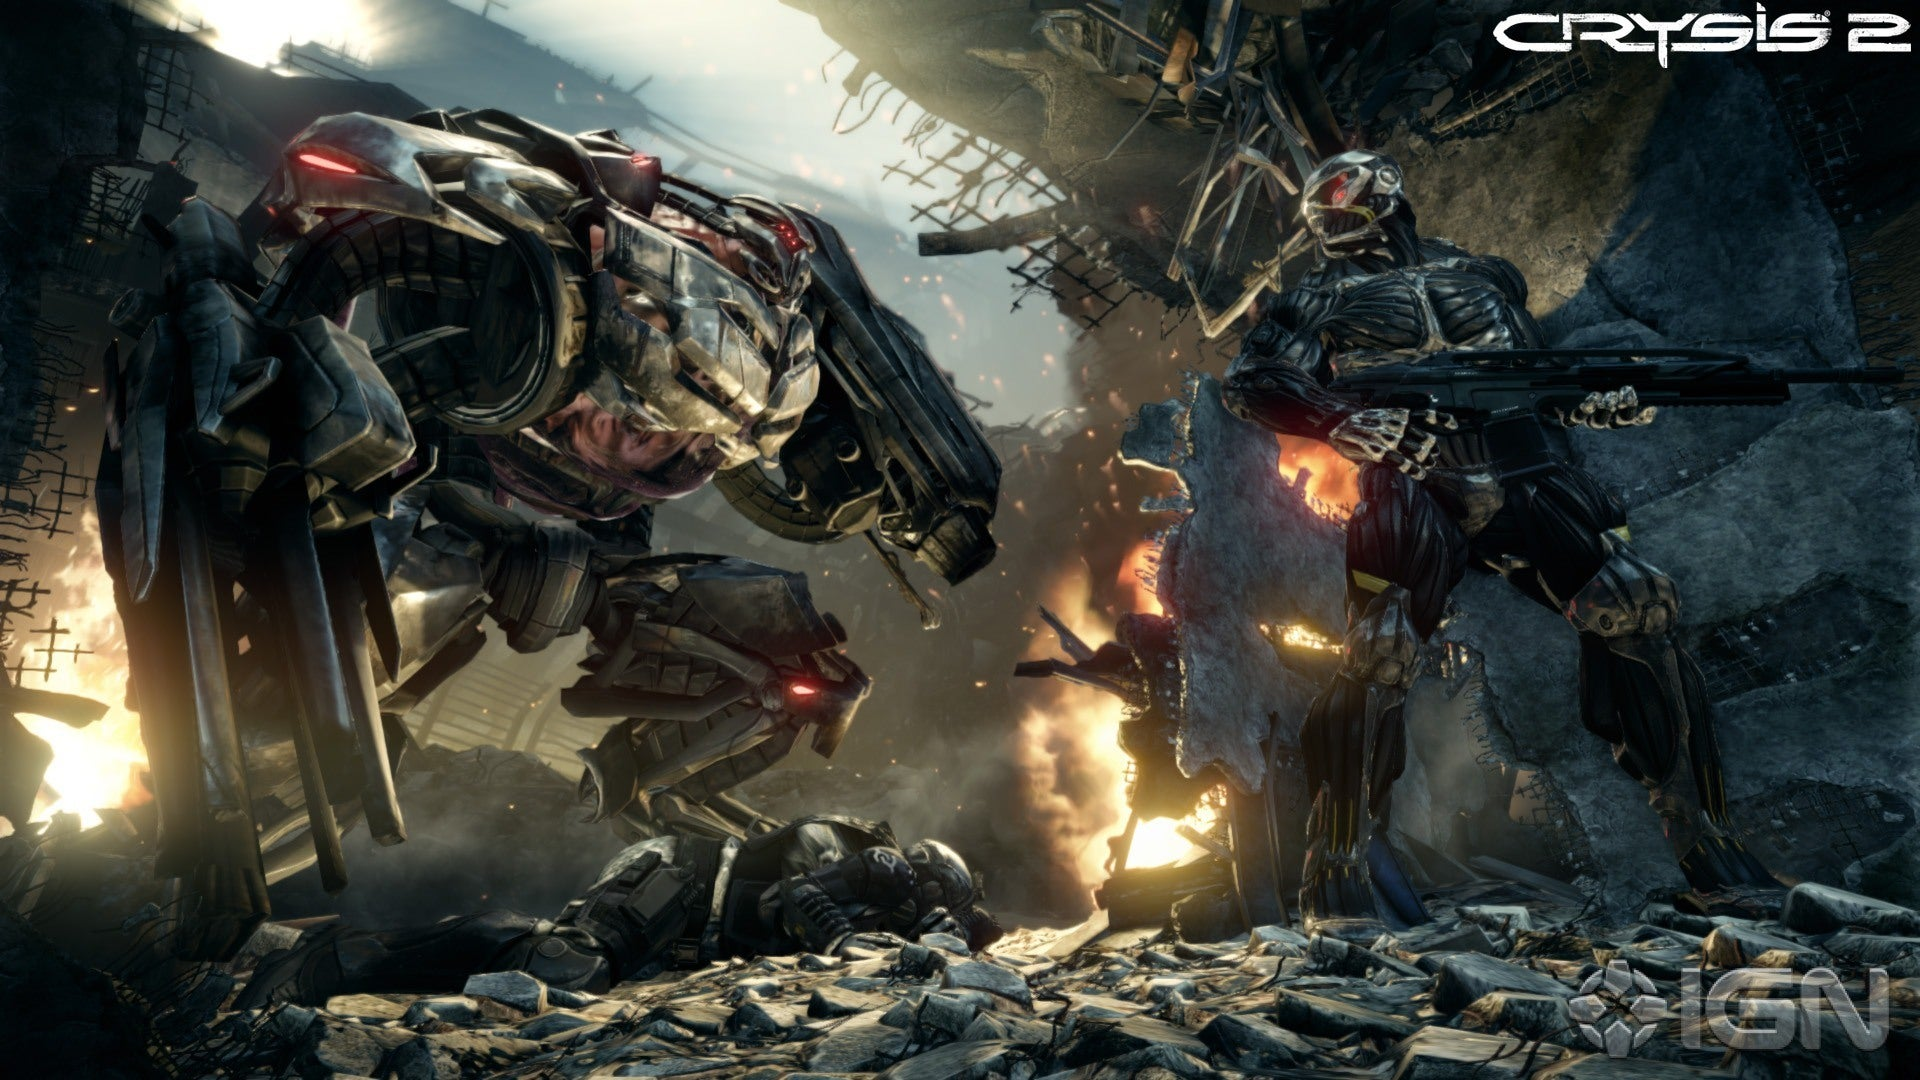 Crysis 2 Screenshots, Pictures, Wallpapers - Xbox 360 - IGN